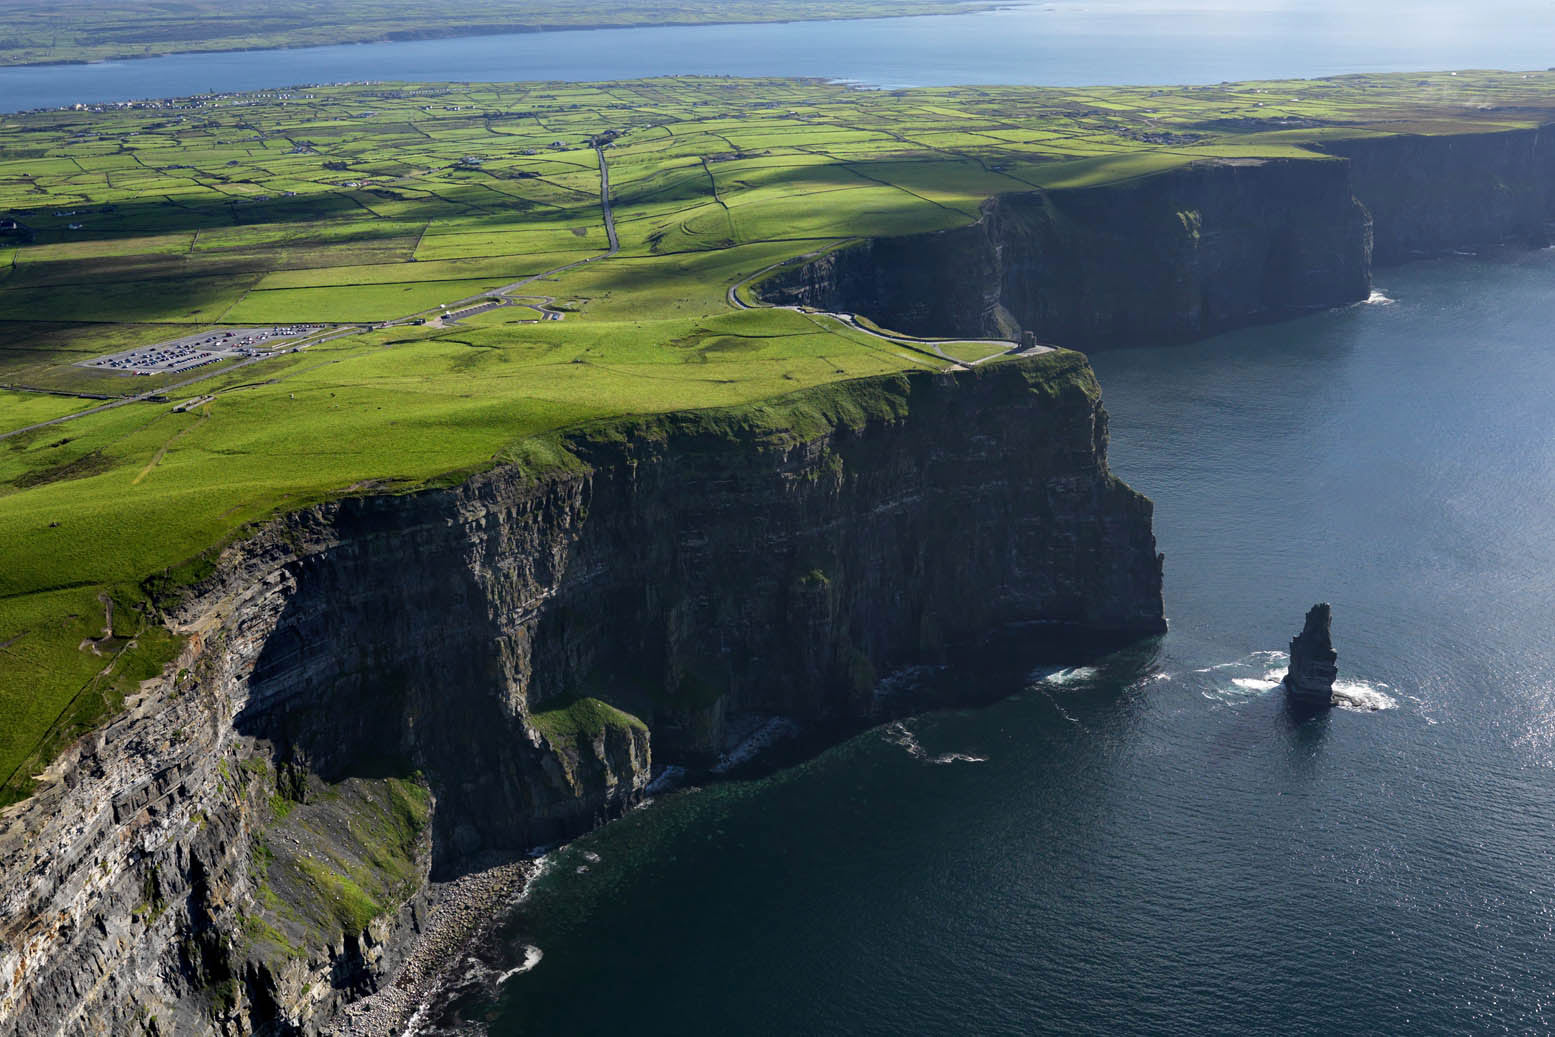 Cliffs of Moher. Ireland meets the Atlantic Ocean